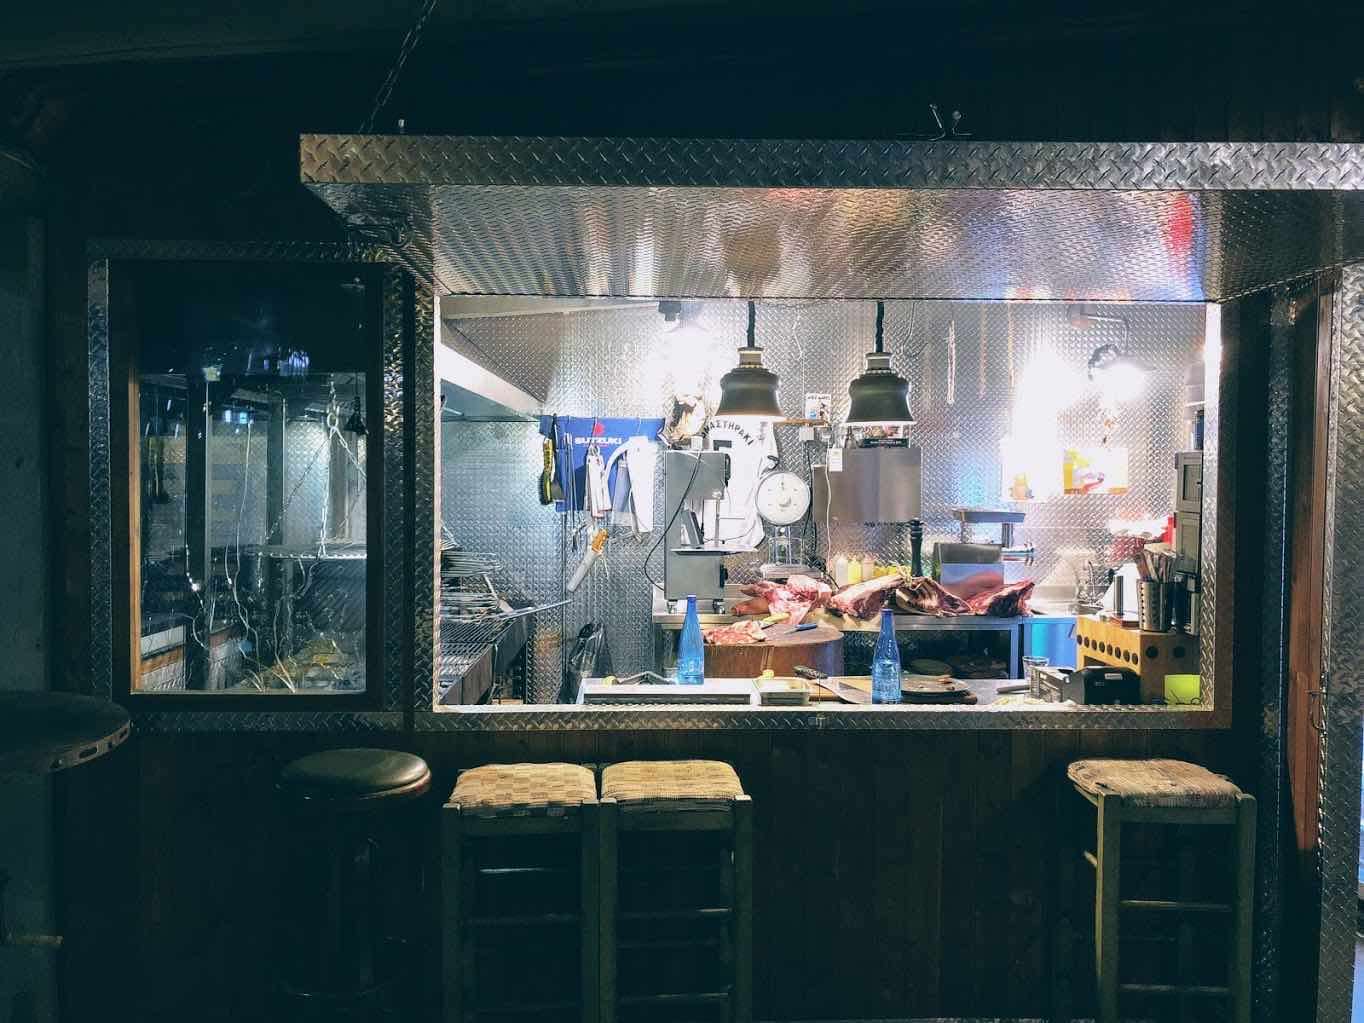 Athens: pure Greek meat and a casual taverna setting at Gidi